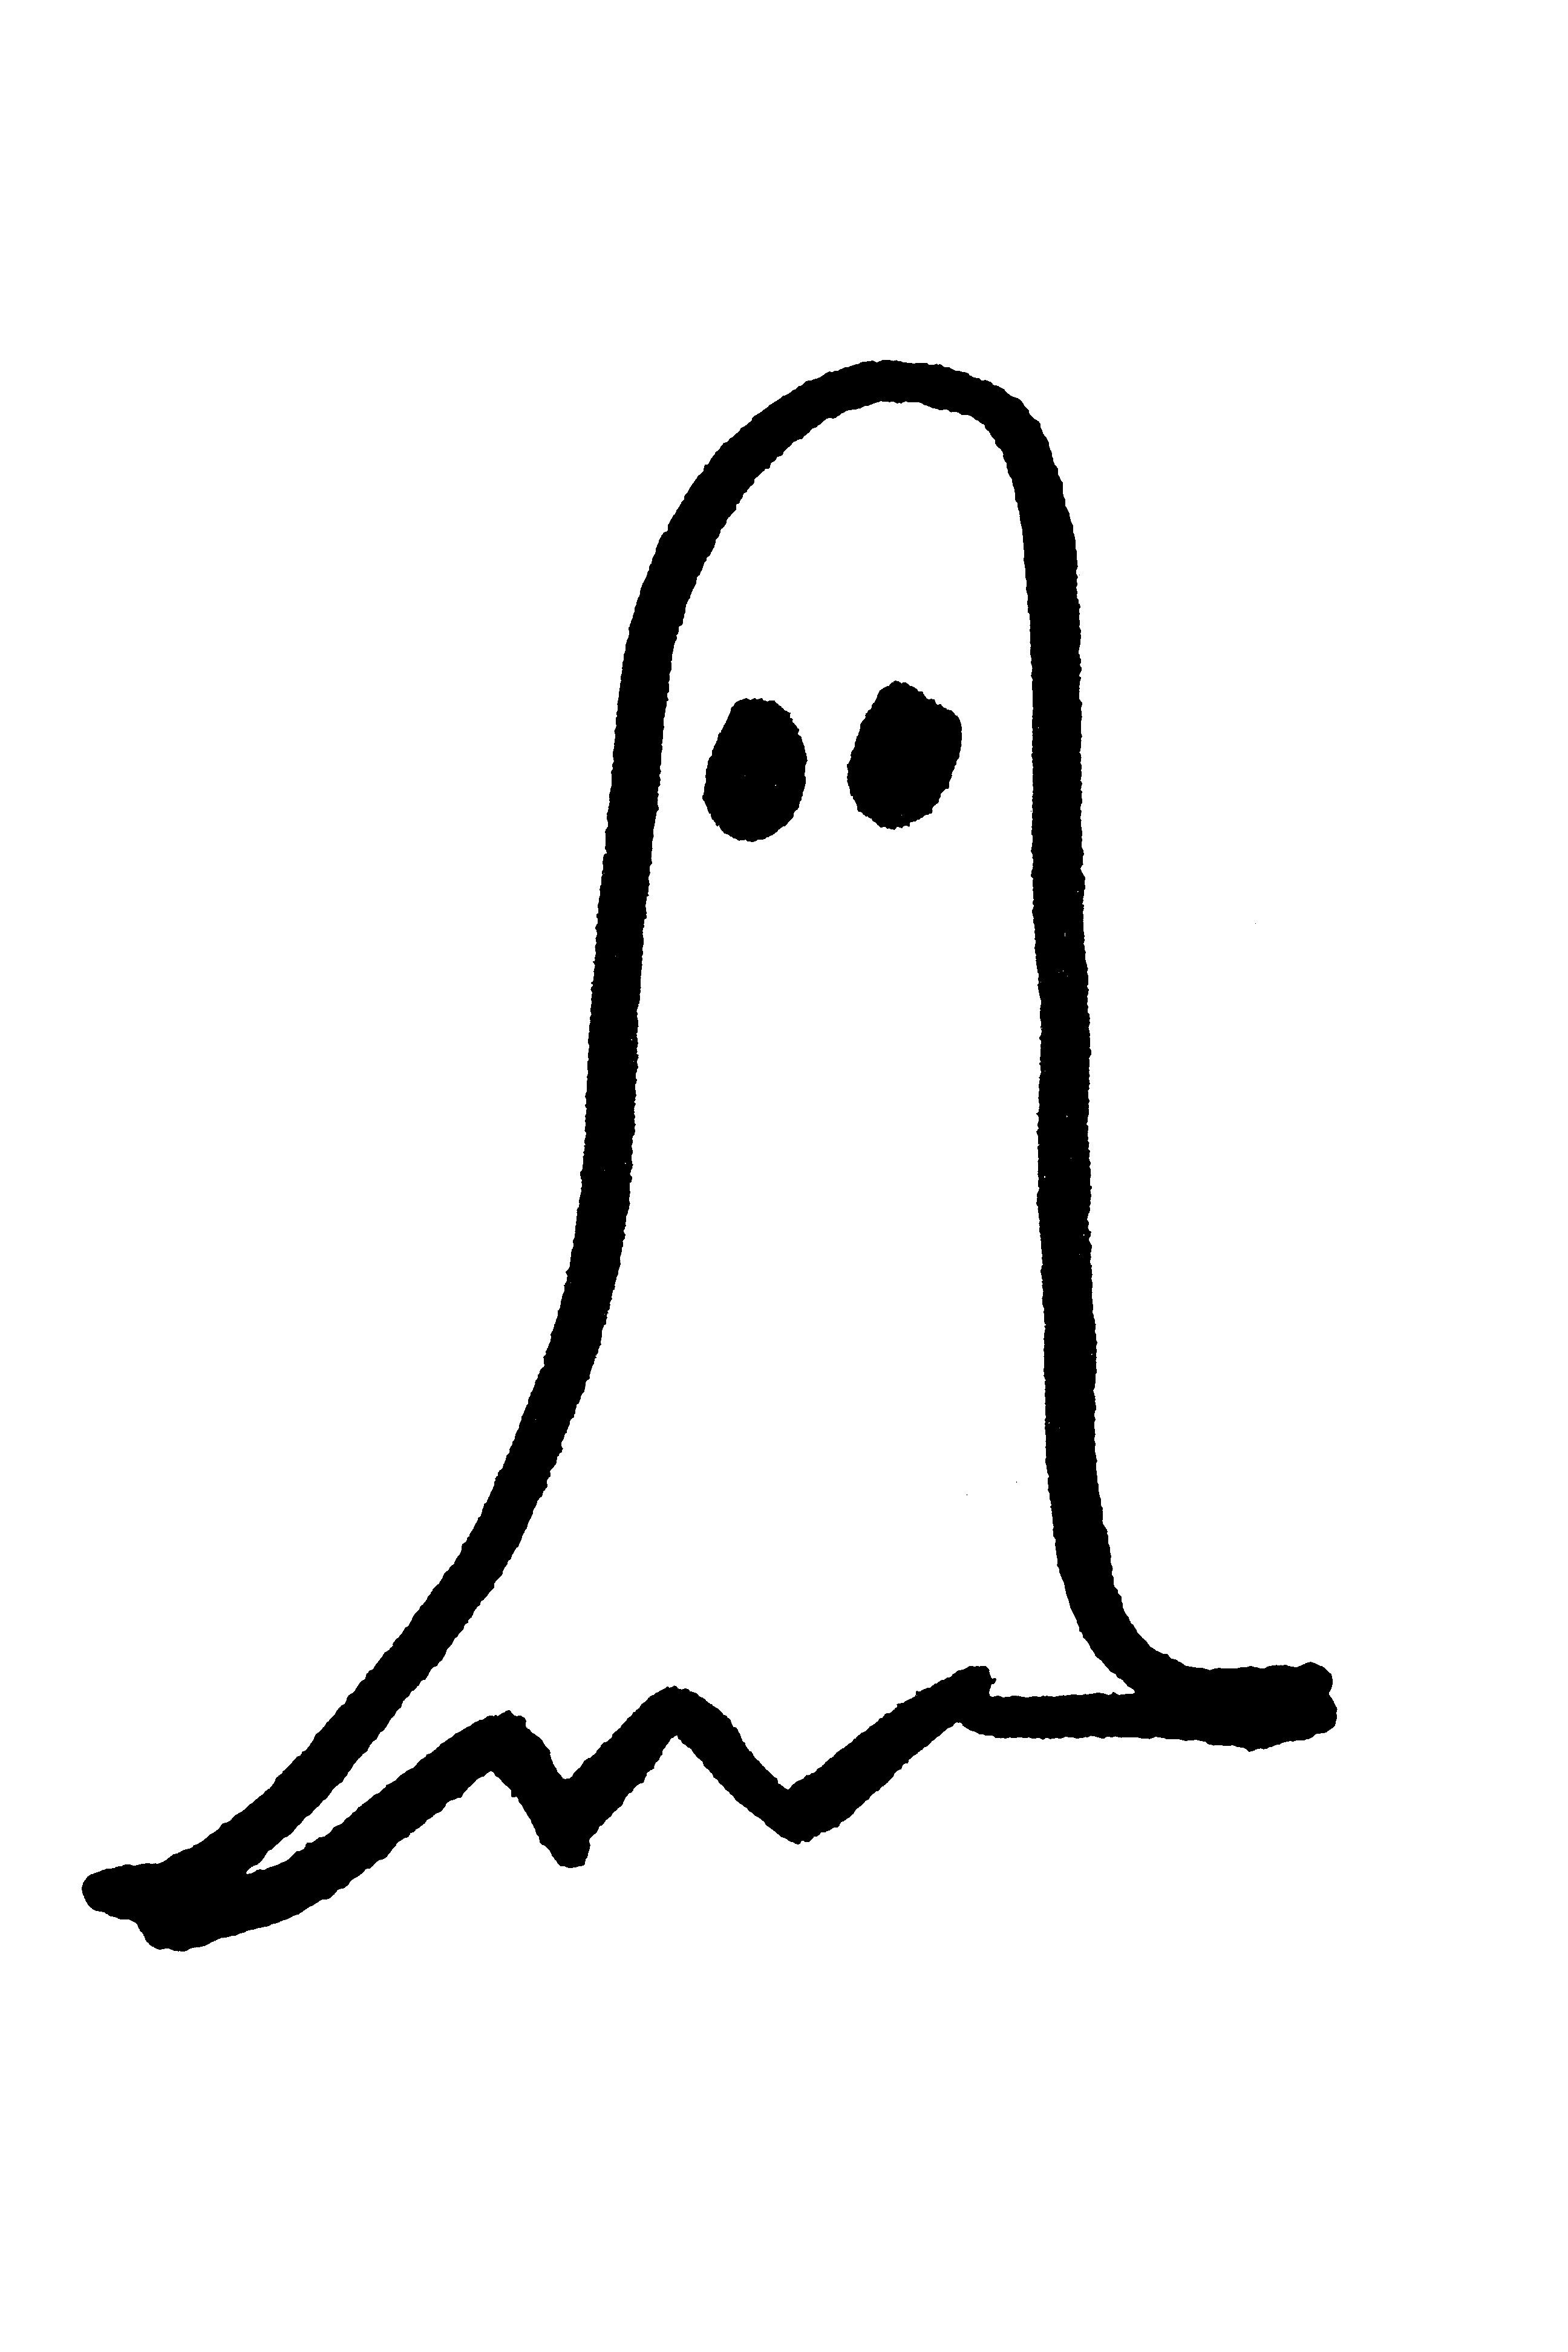 No faace ghost clipart black and white clip library Ghost Face Clipart | Free download best Ghost Face Clipart ... clip library